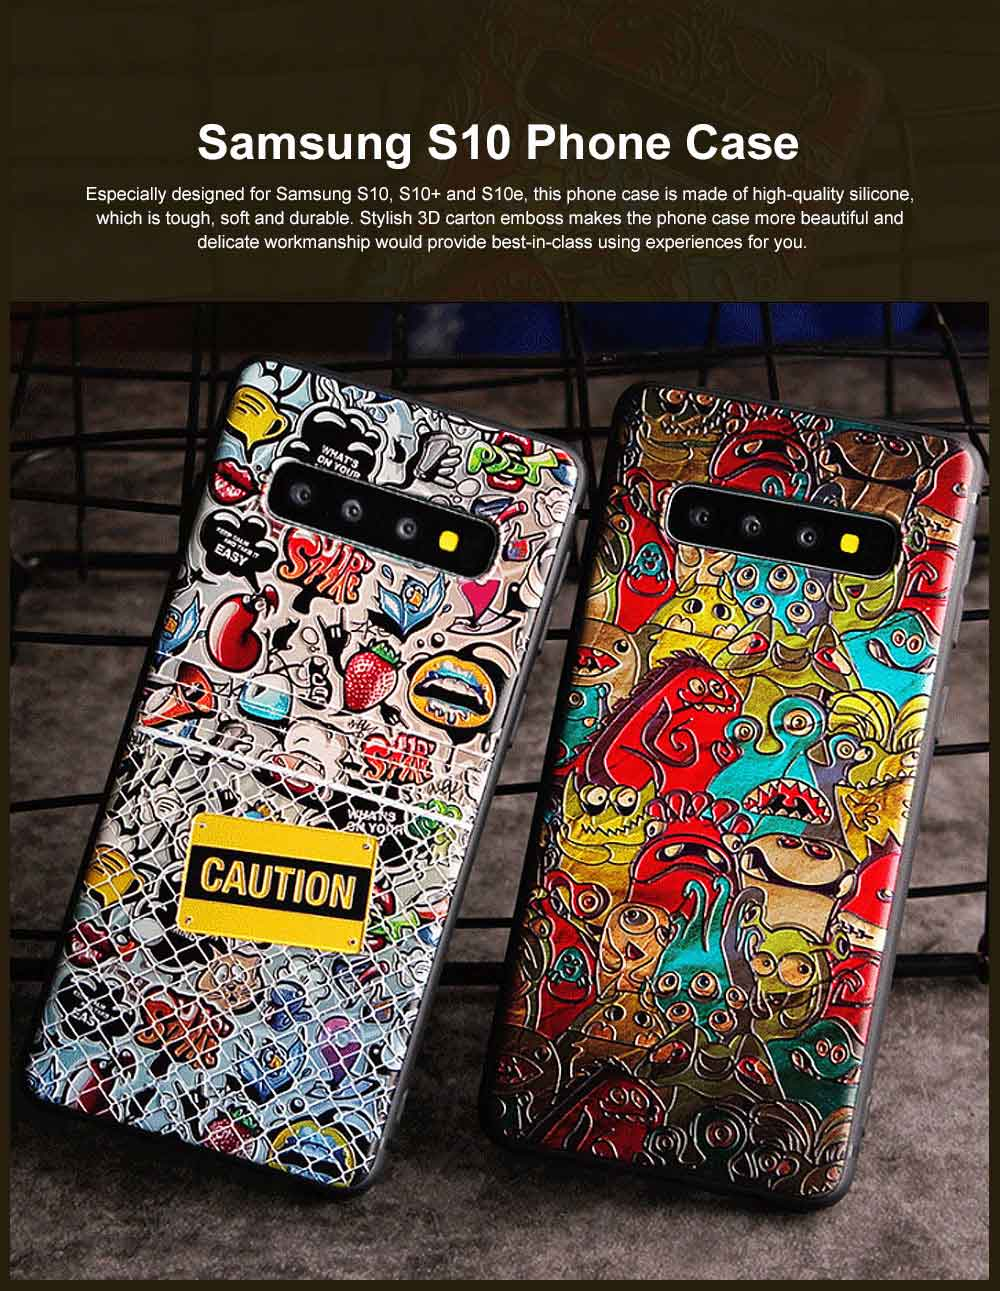 Creative Stylish Carton 3D Emboss Phone Case, Soft Silicone Colorful Painting Phone Skins, Full Protection Phone Cover for Samsung S10+ S10e S10 Plus with Rope 0